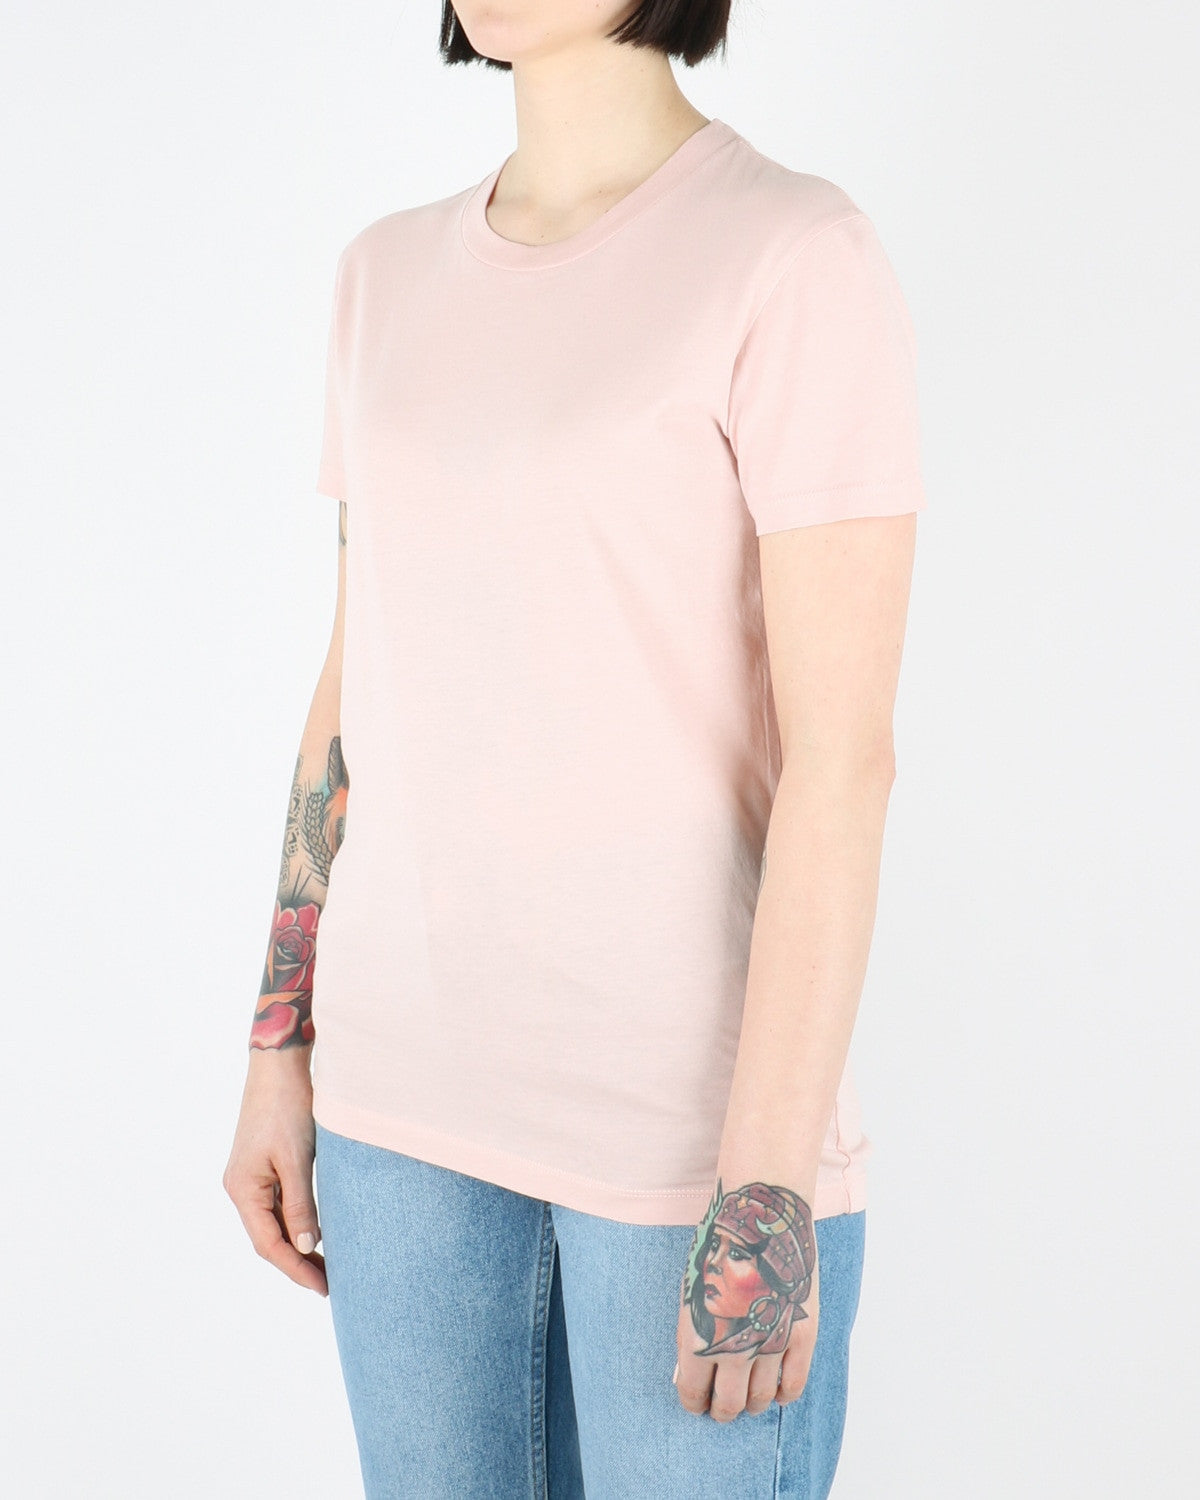 wood wood_eden t-shirt_light peach_view_1_2